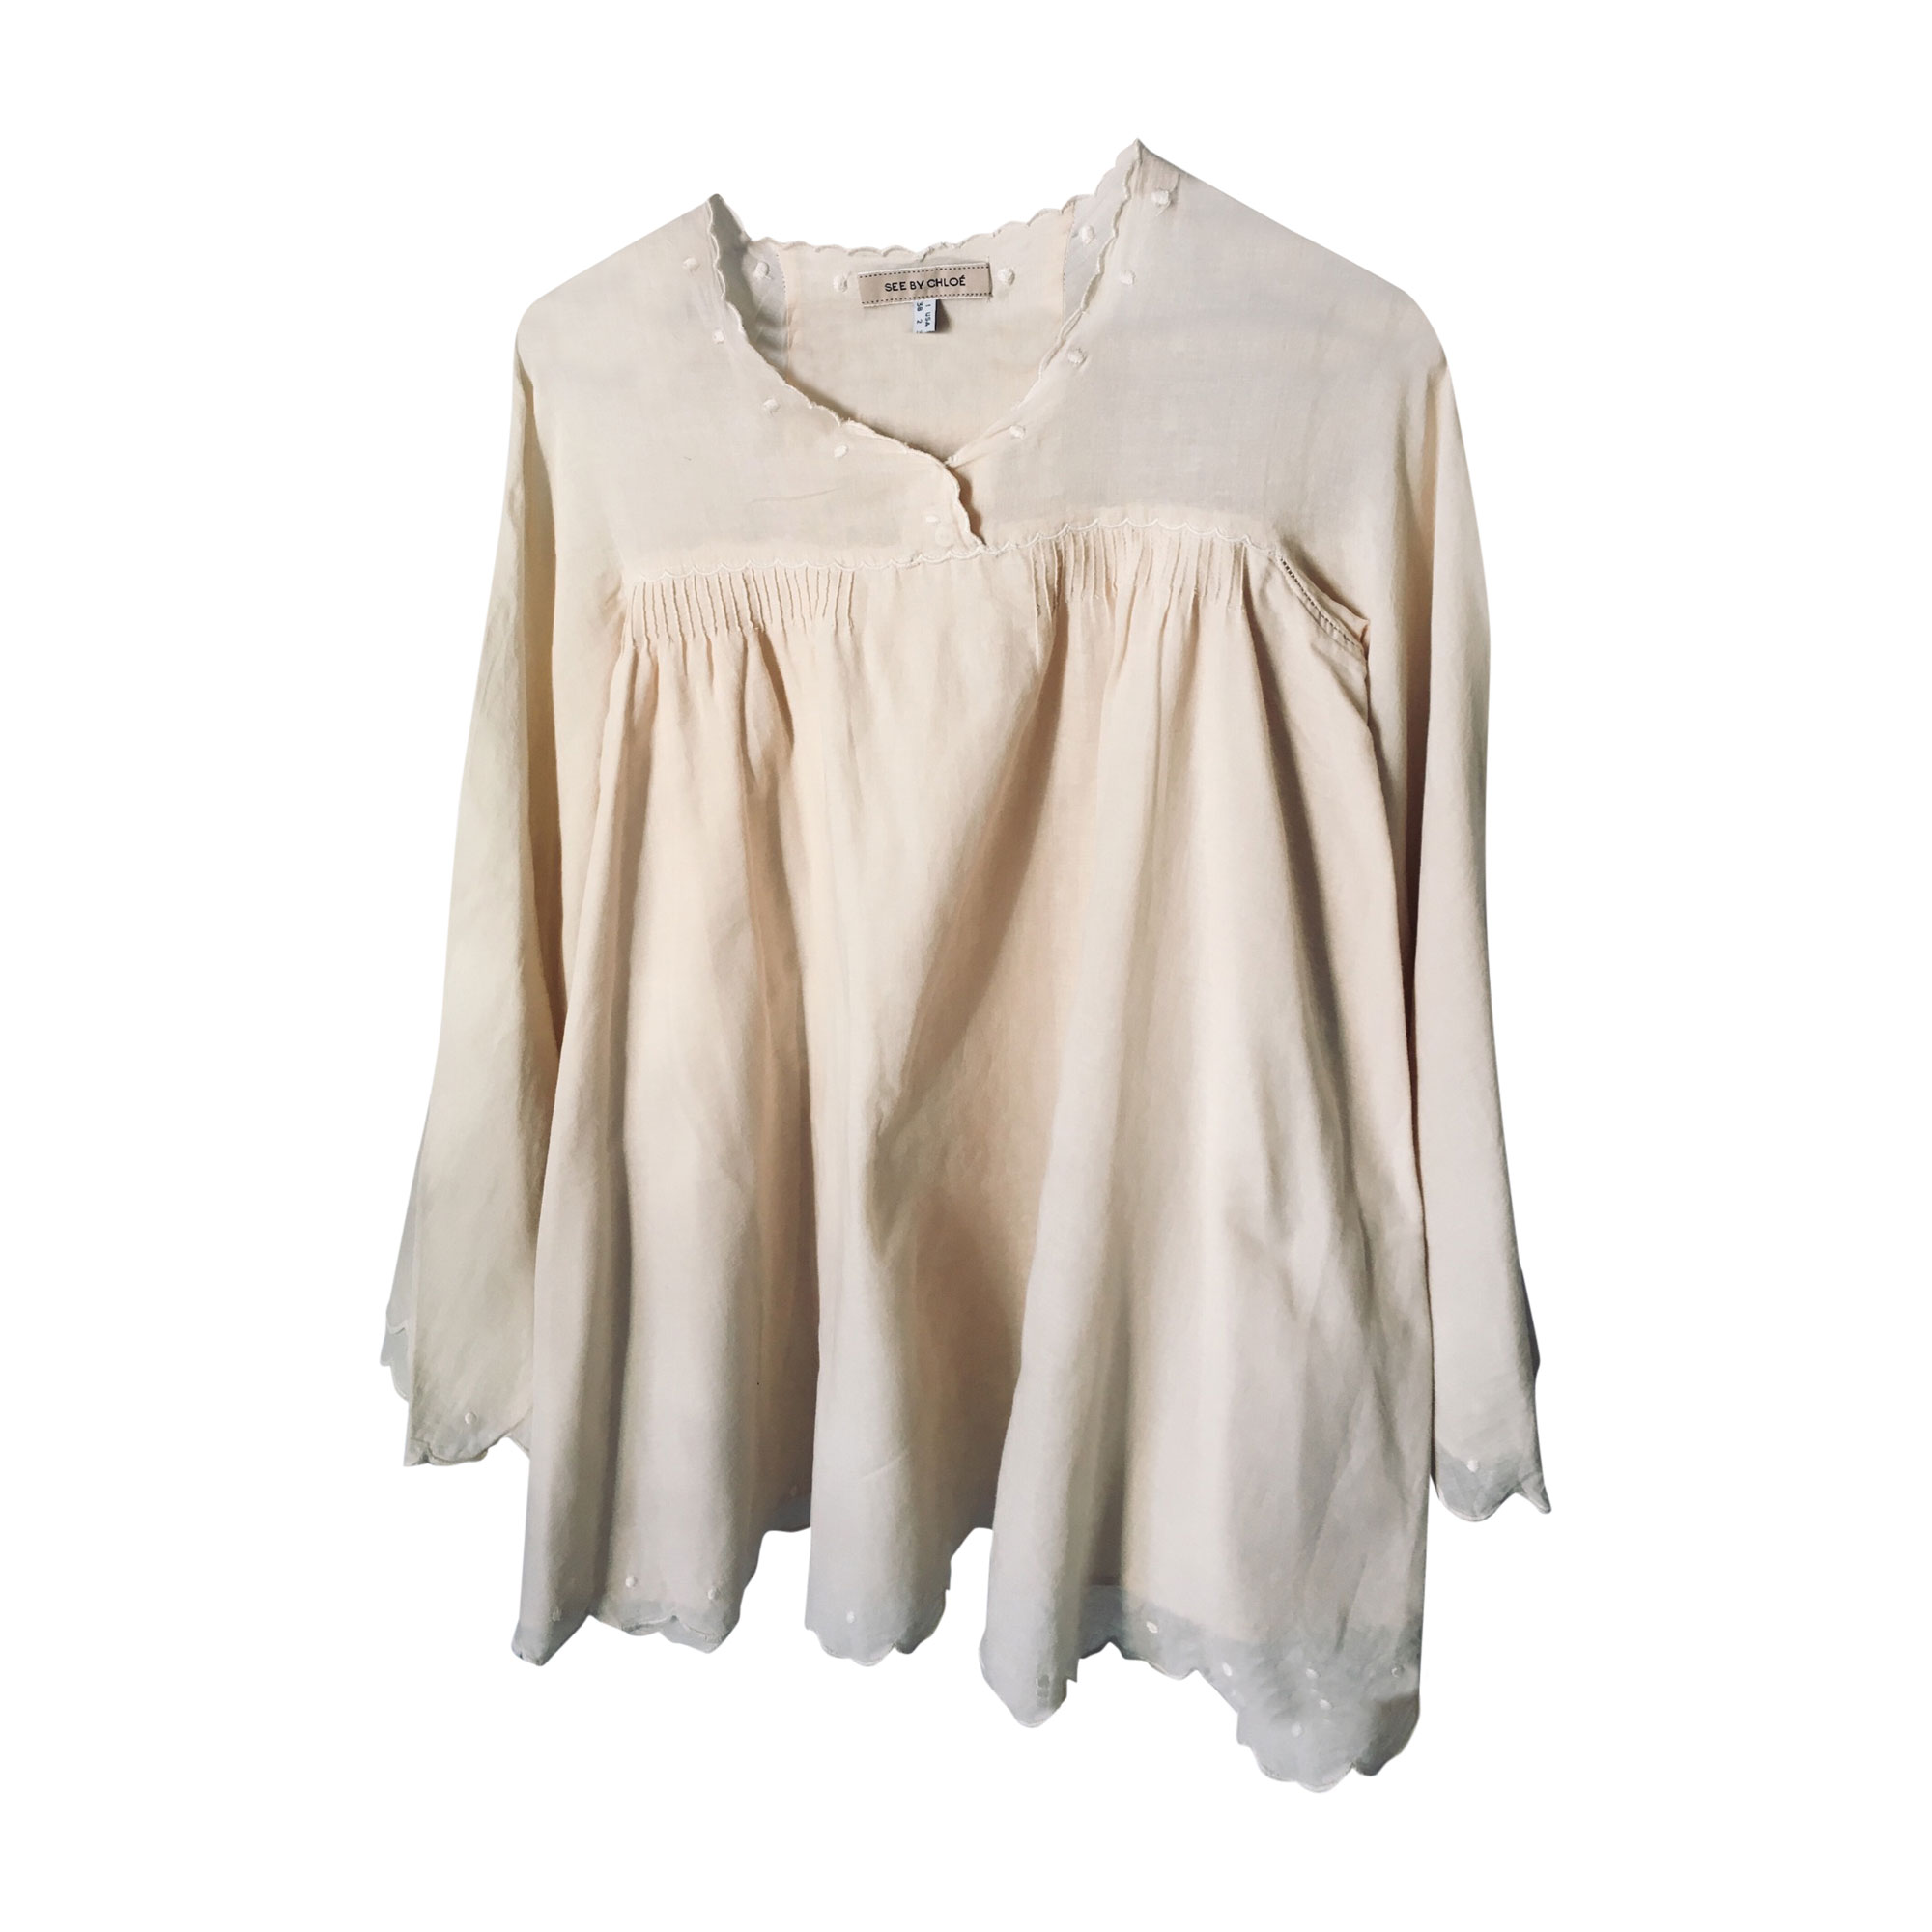 Blouse SEE BY CHLOE White, off-white, ecru